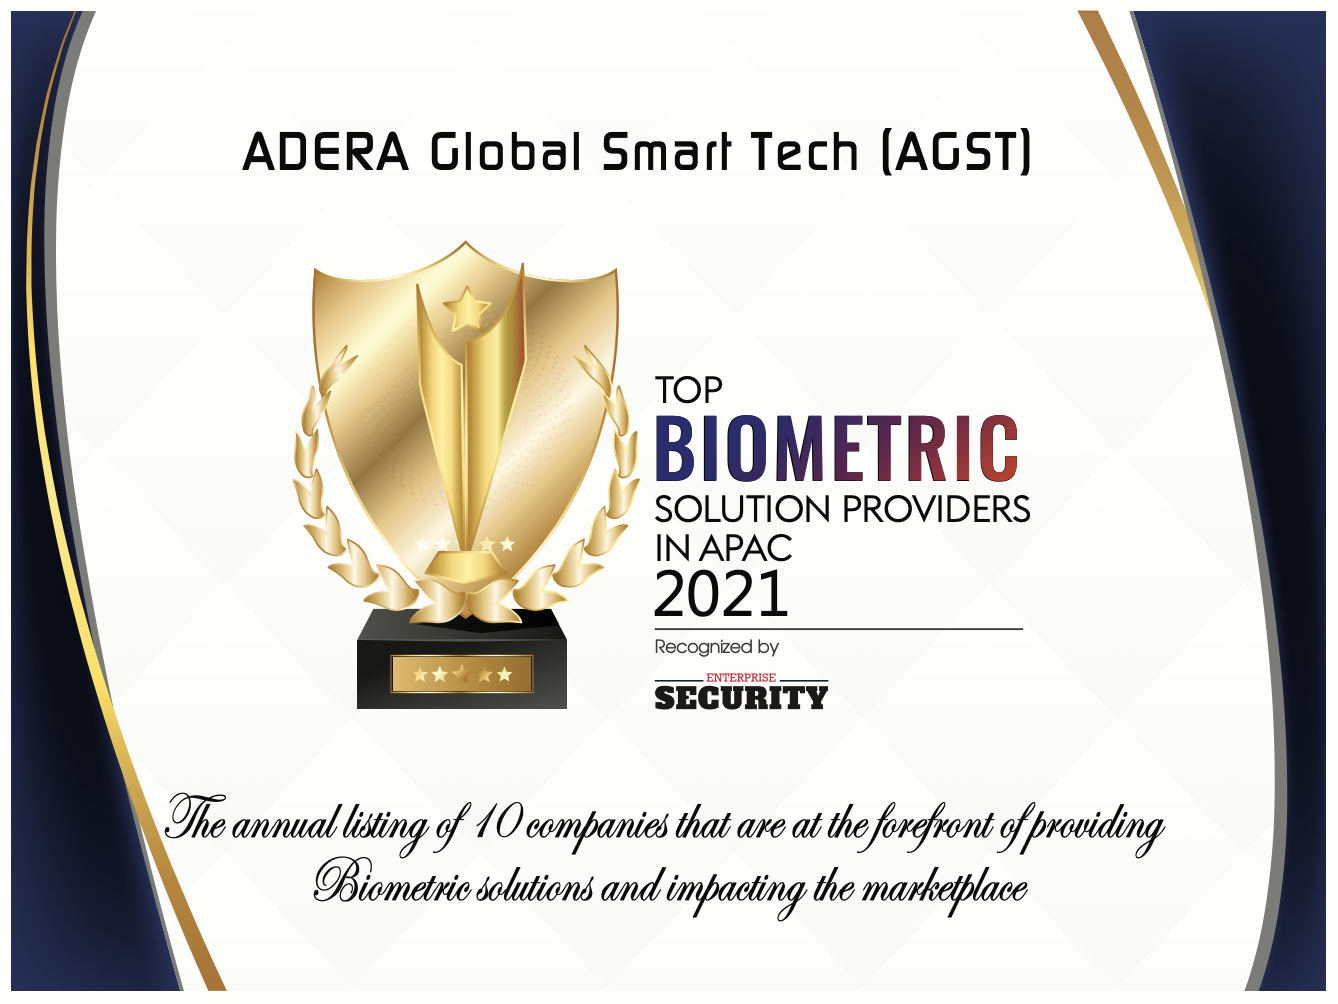 ADERA Global Smart Tech (AGST) awarded the Top 10 Biometric Solution Providers in the APAC region for 2021 by Enterprise Security Magazine.